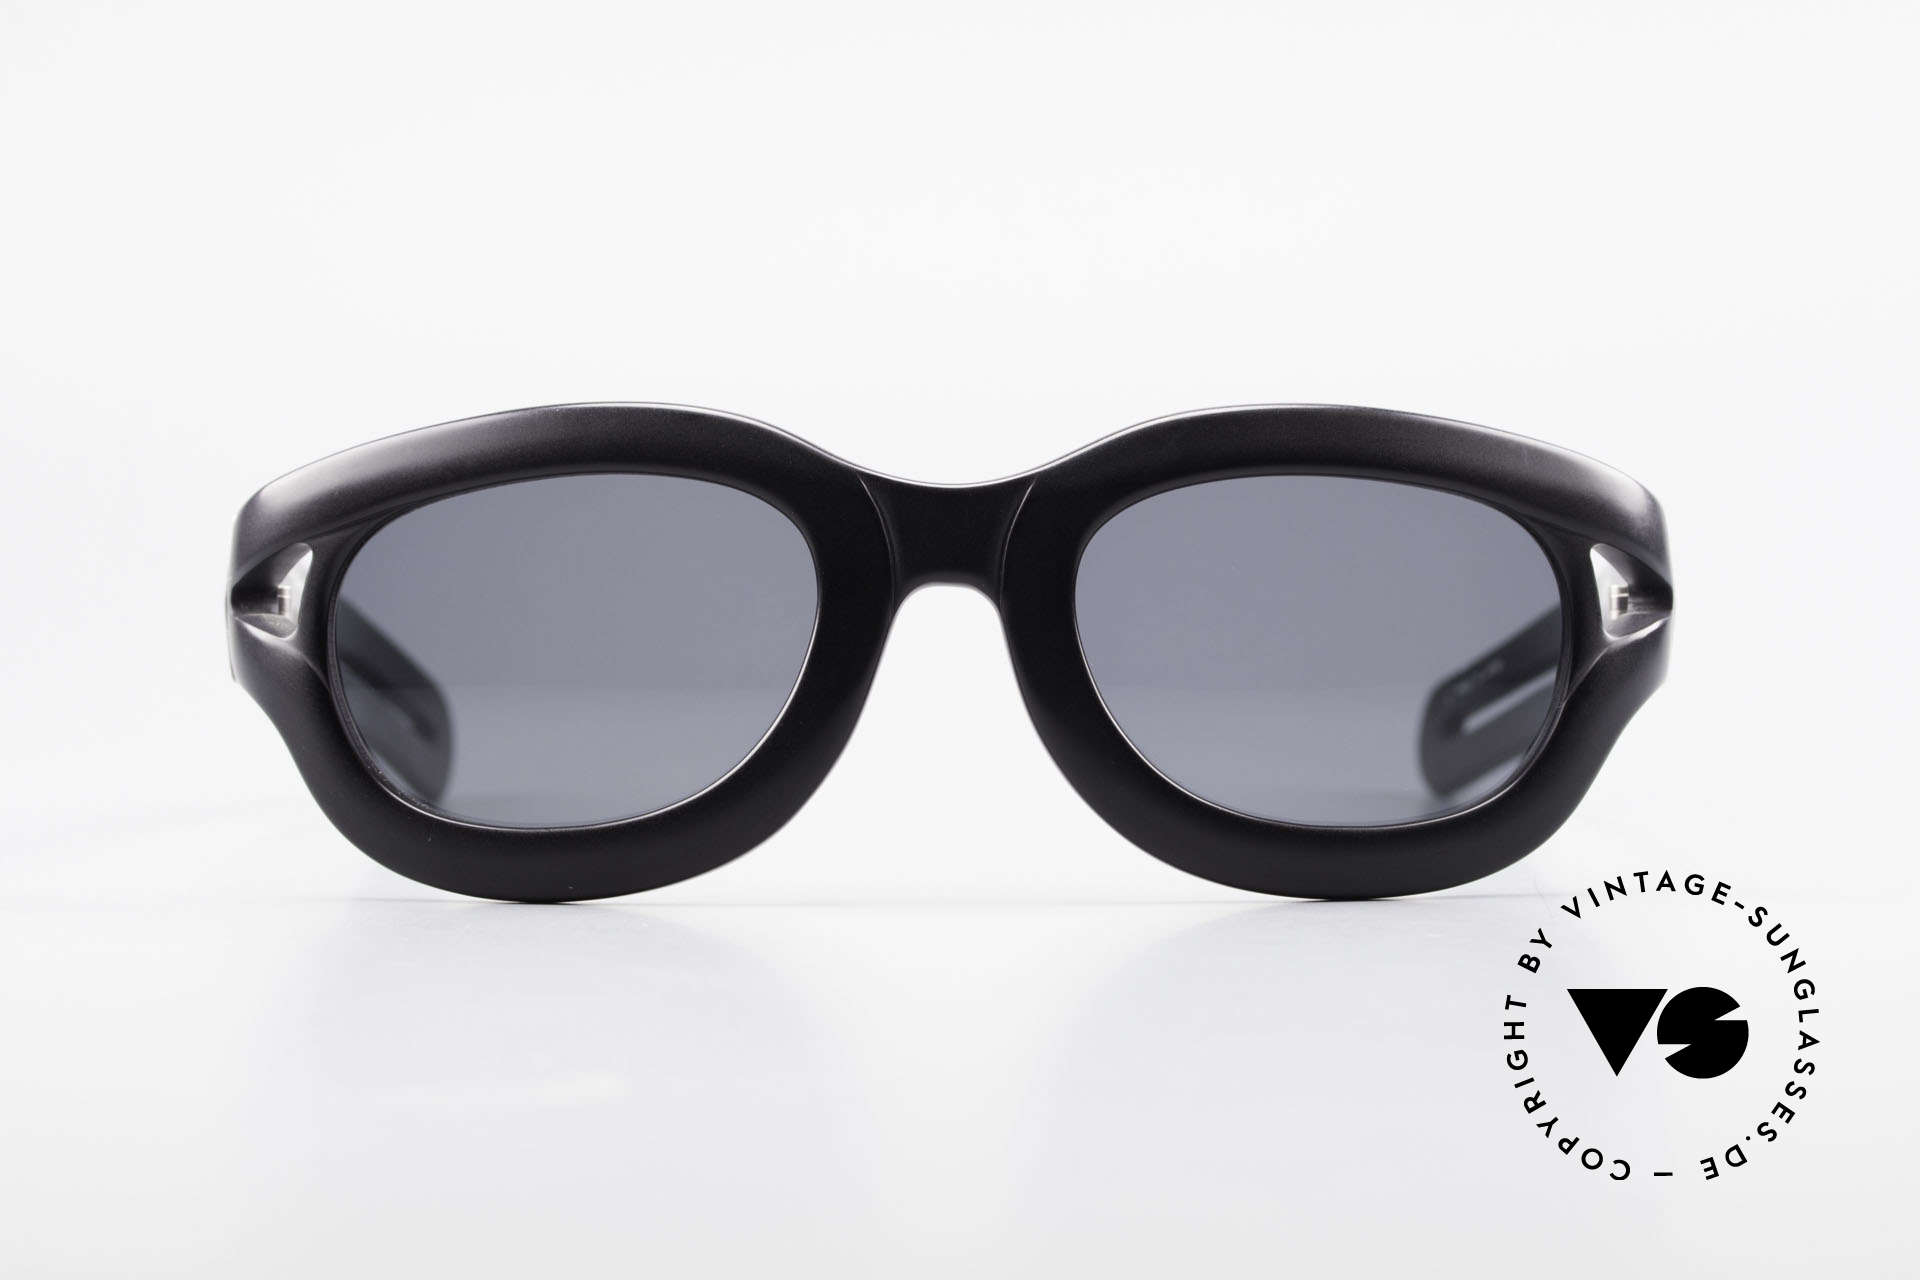 Yohji Yamamoto 52-6001 Rare 90's Designer Sunglasses, well-known for exquisite craftsmanship, made in Japan, Made for Men and Women